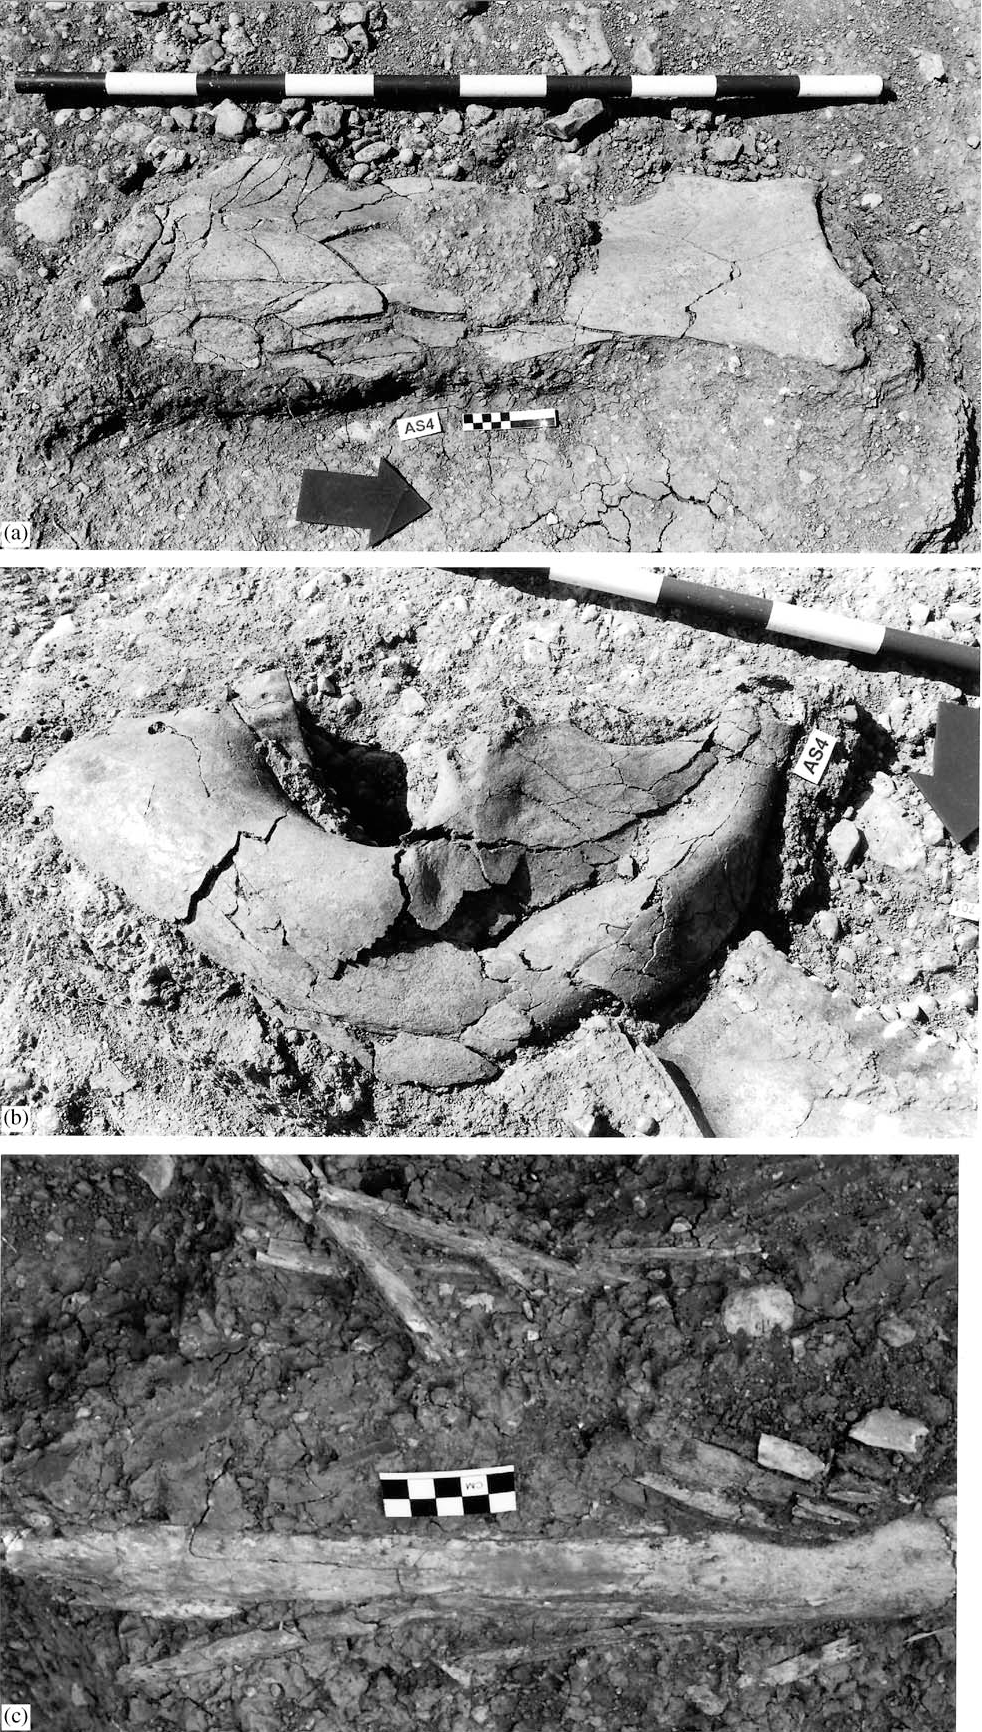 Fig. 7. (a) and (b) Compression fractures on elephant scapula AS4, 685 and elephant mandible AS4, 679. (c) in situ weathering and fragmentation of tusk AS4, 1002.